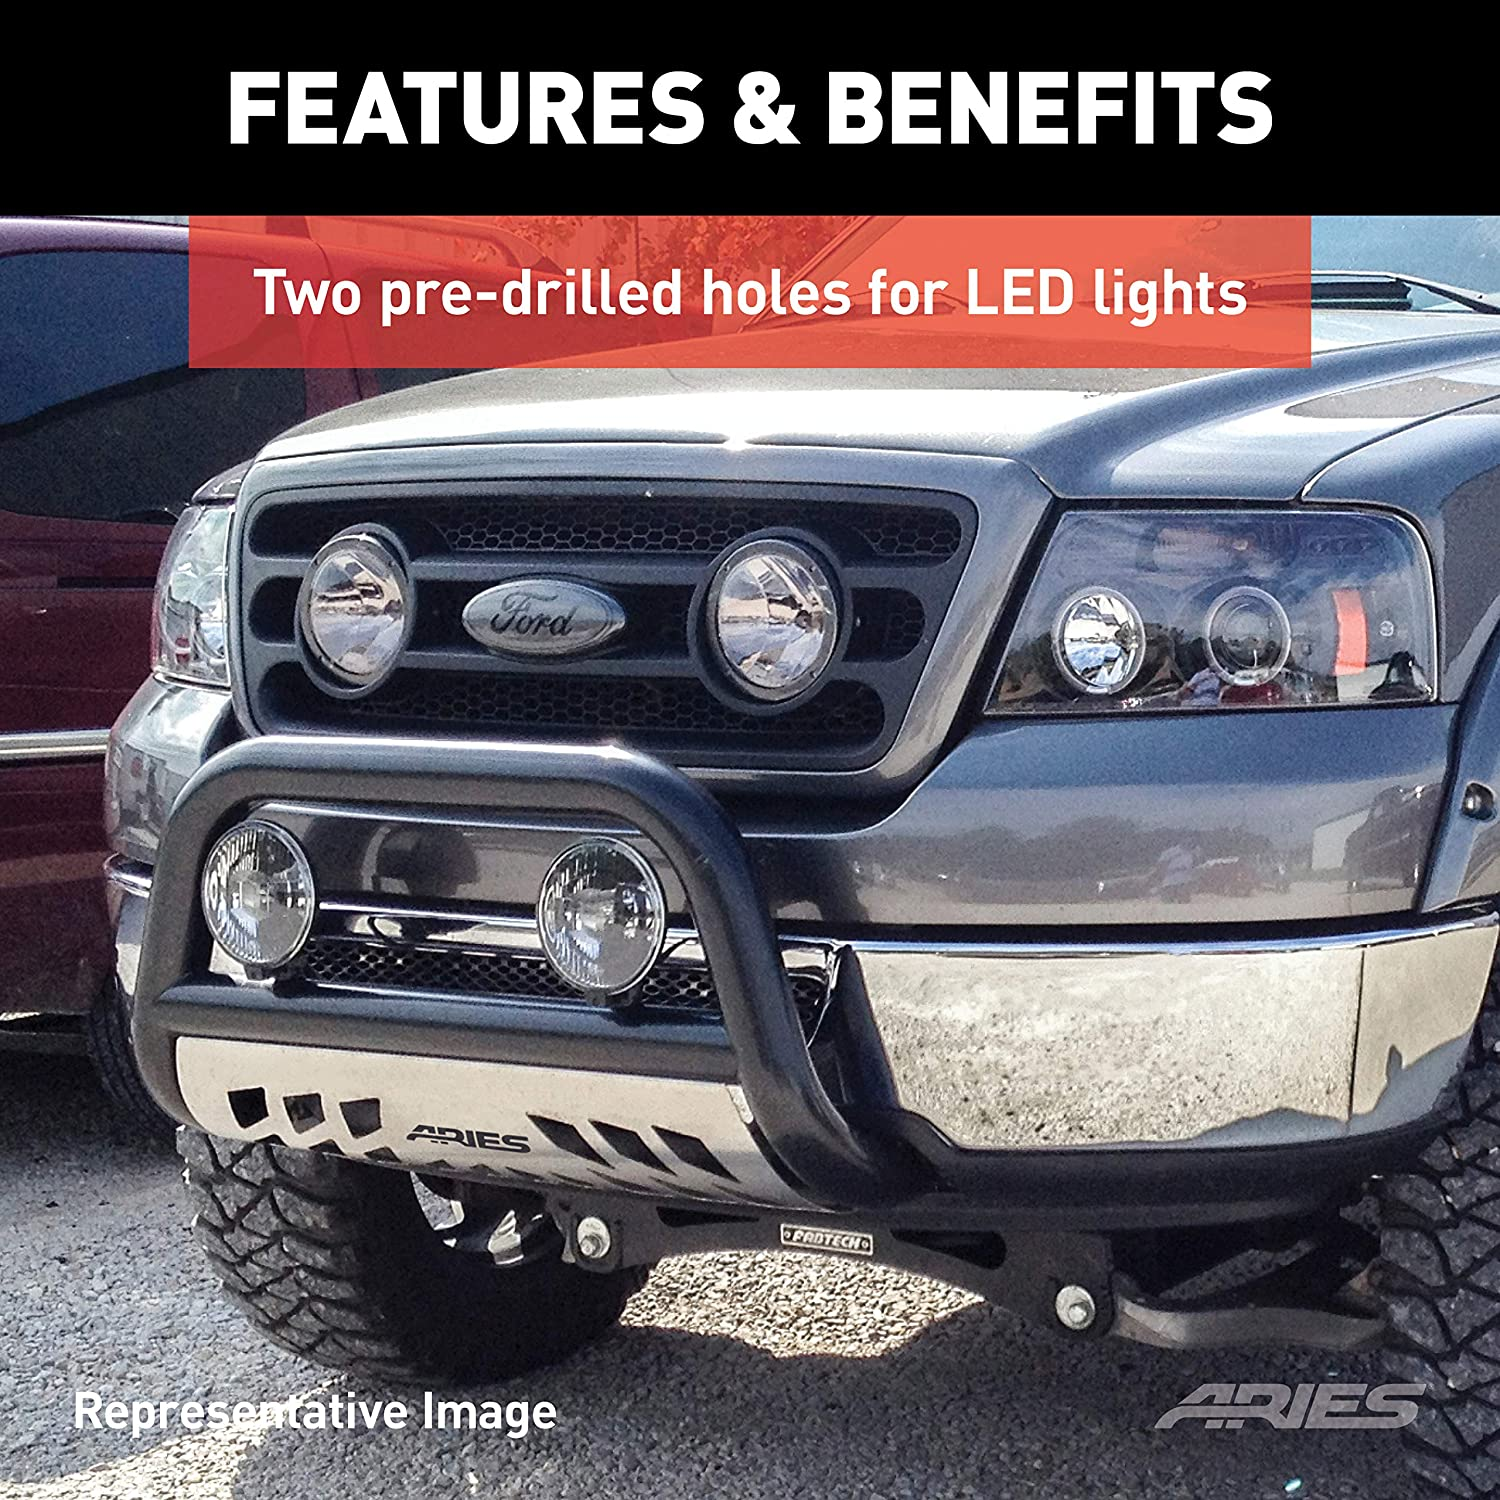 ARIES 35-2000 3-Inch Polished Stainless Steel Bull Bar Select Toyota Tacoma